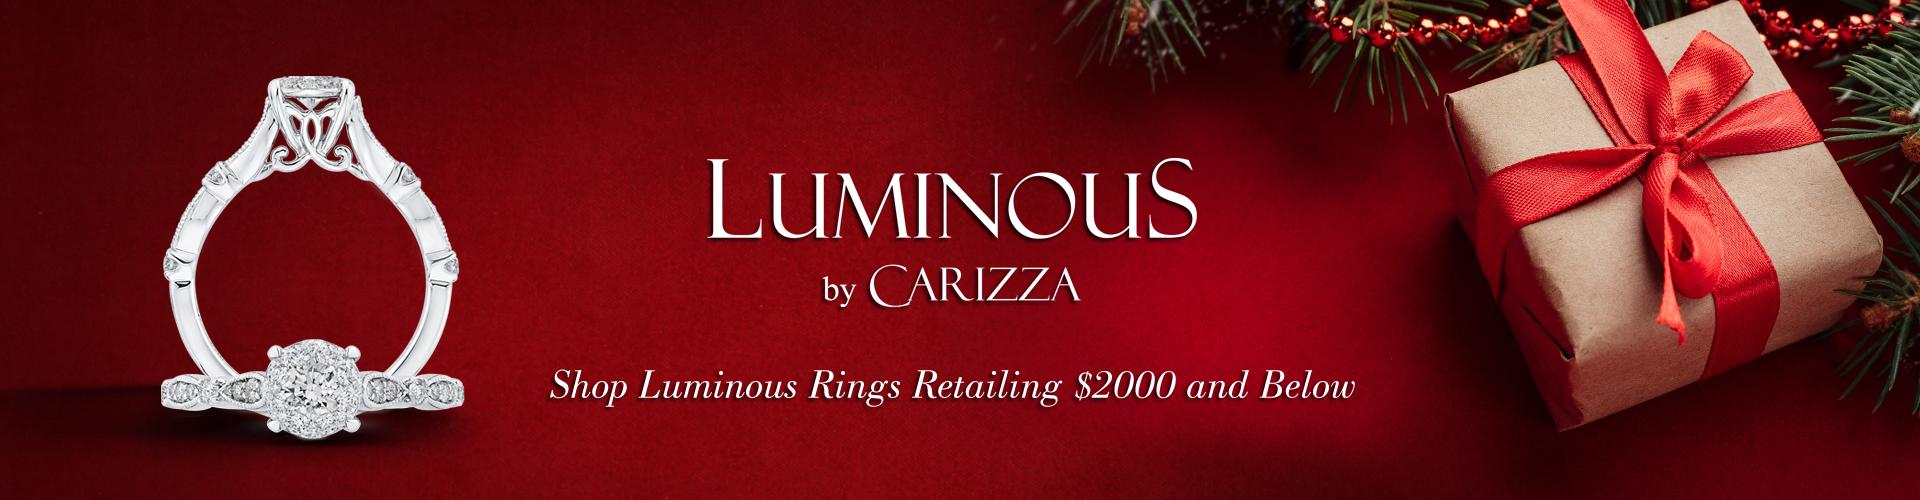 Shop Luminous Rings Retailing $2000 and Below